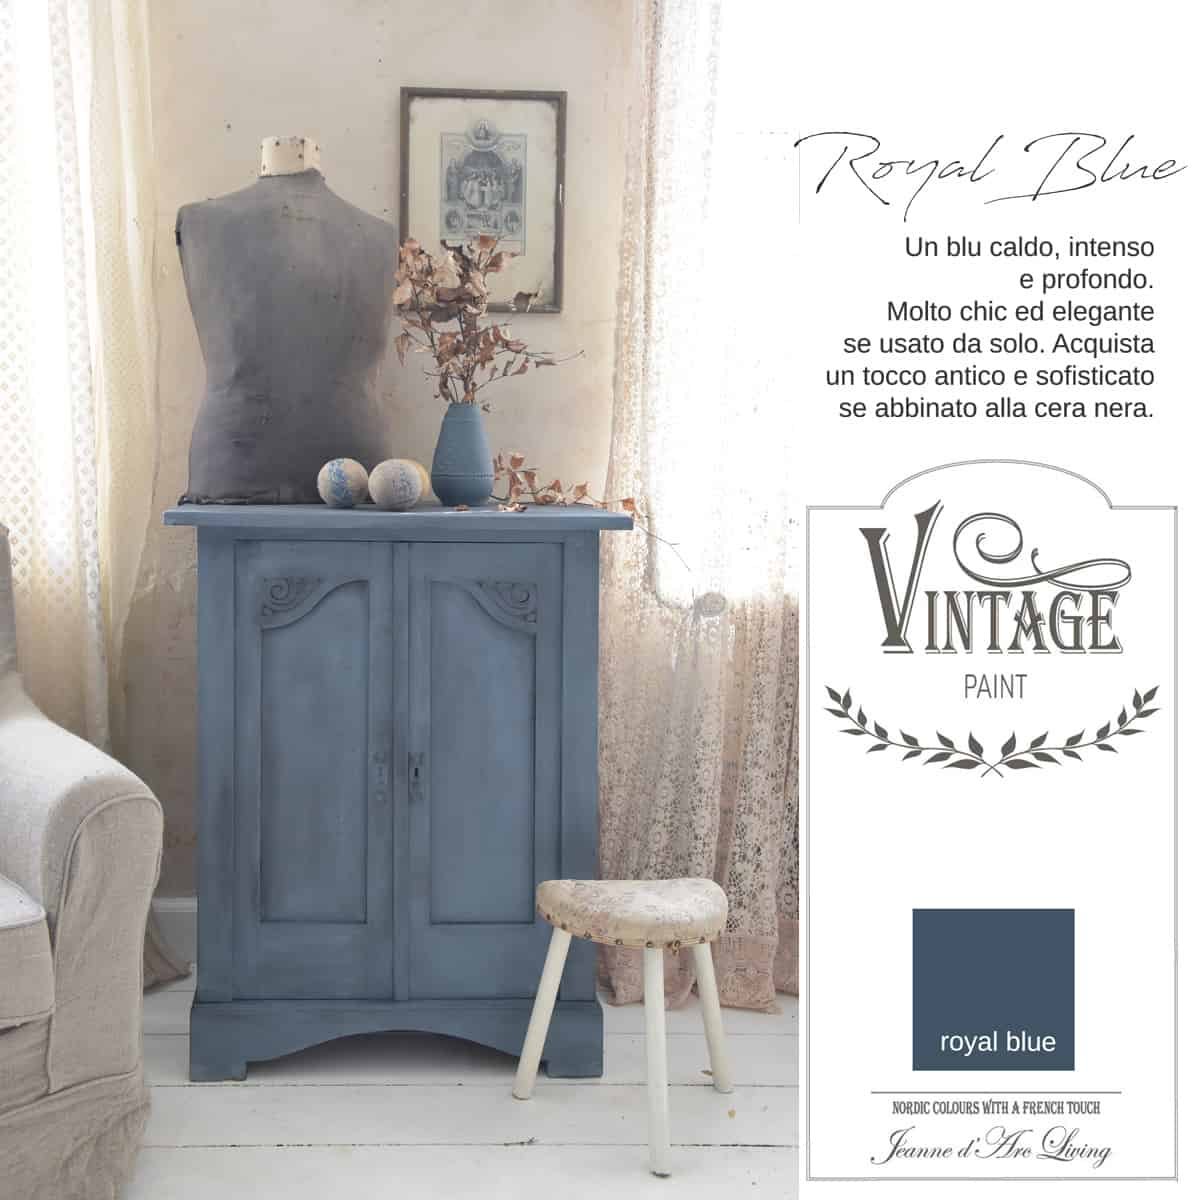 Royal Blue Vernice Vintage Chalk Paint Vintagepaint